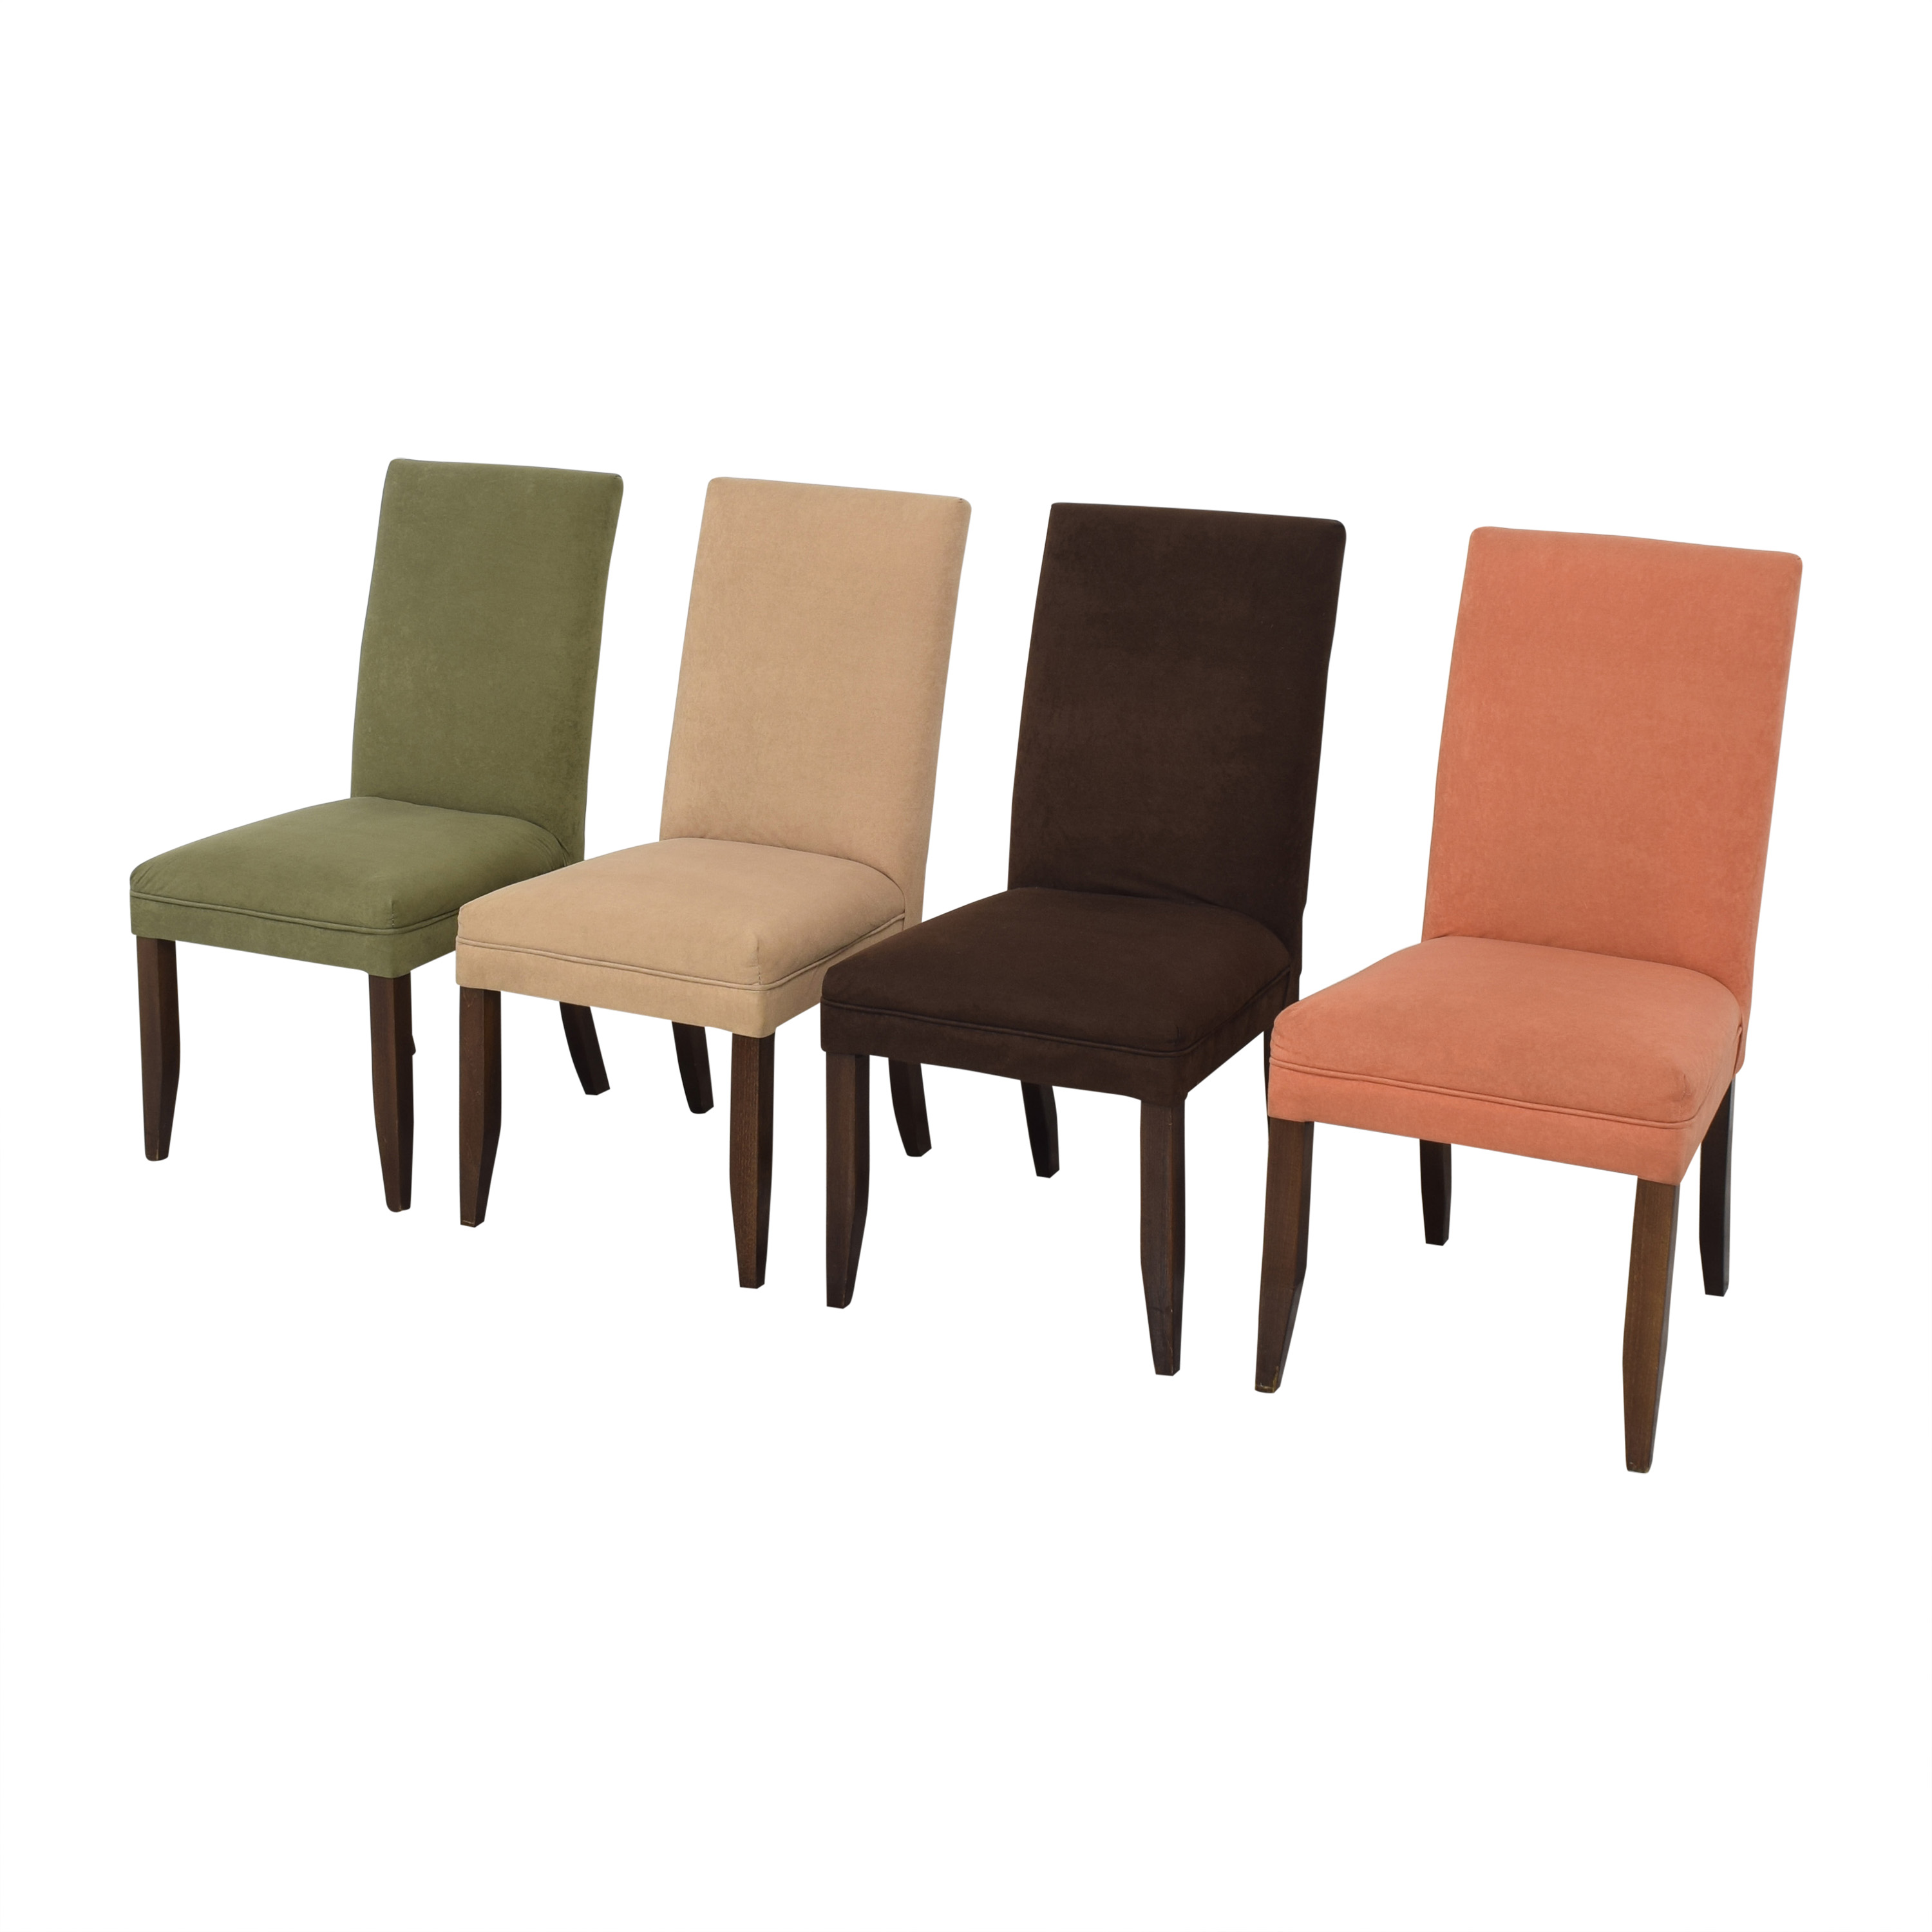 Crate & Barrel Crate & Barrel Dining Chairs nyc